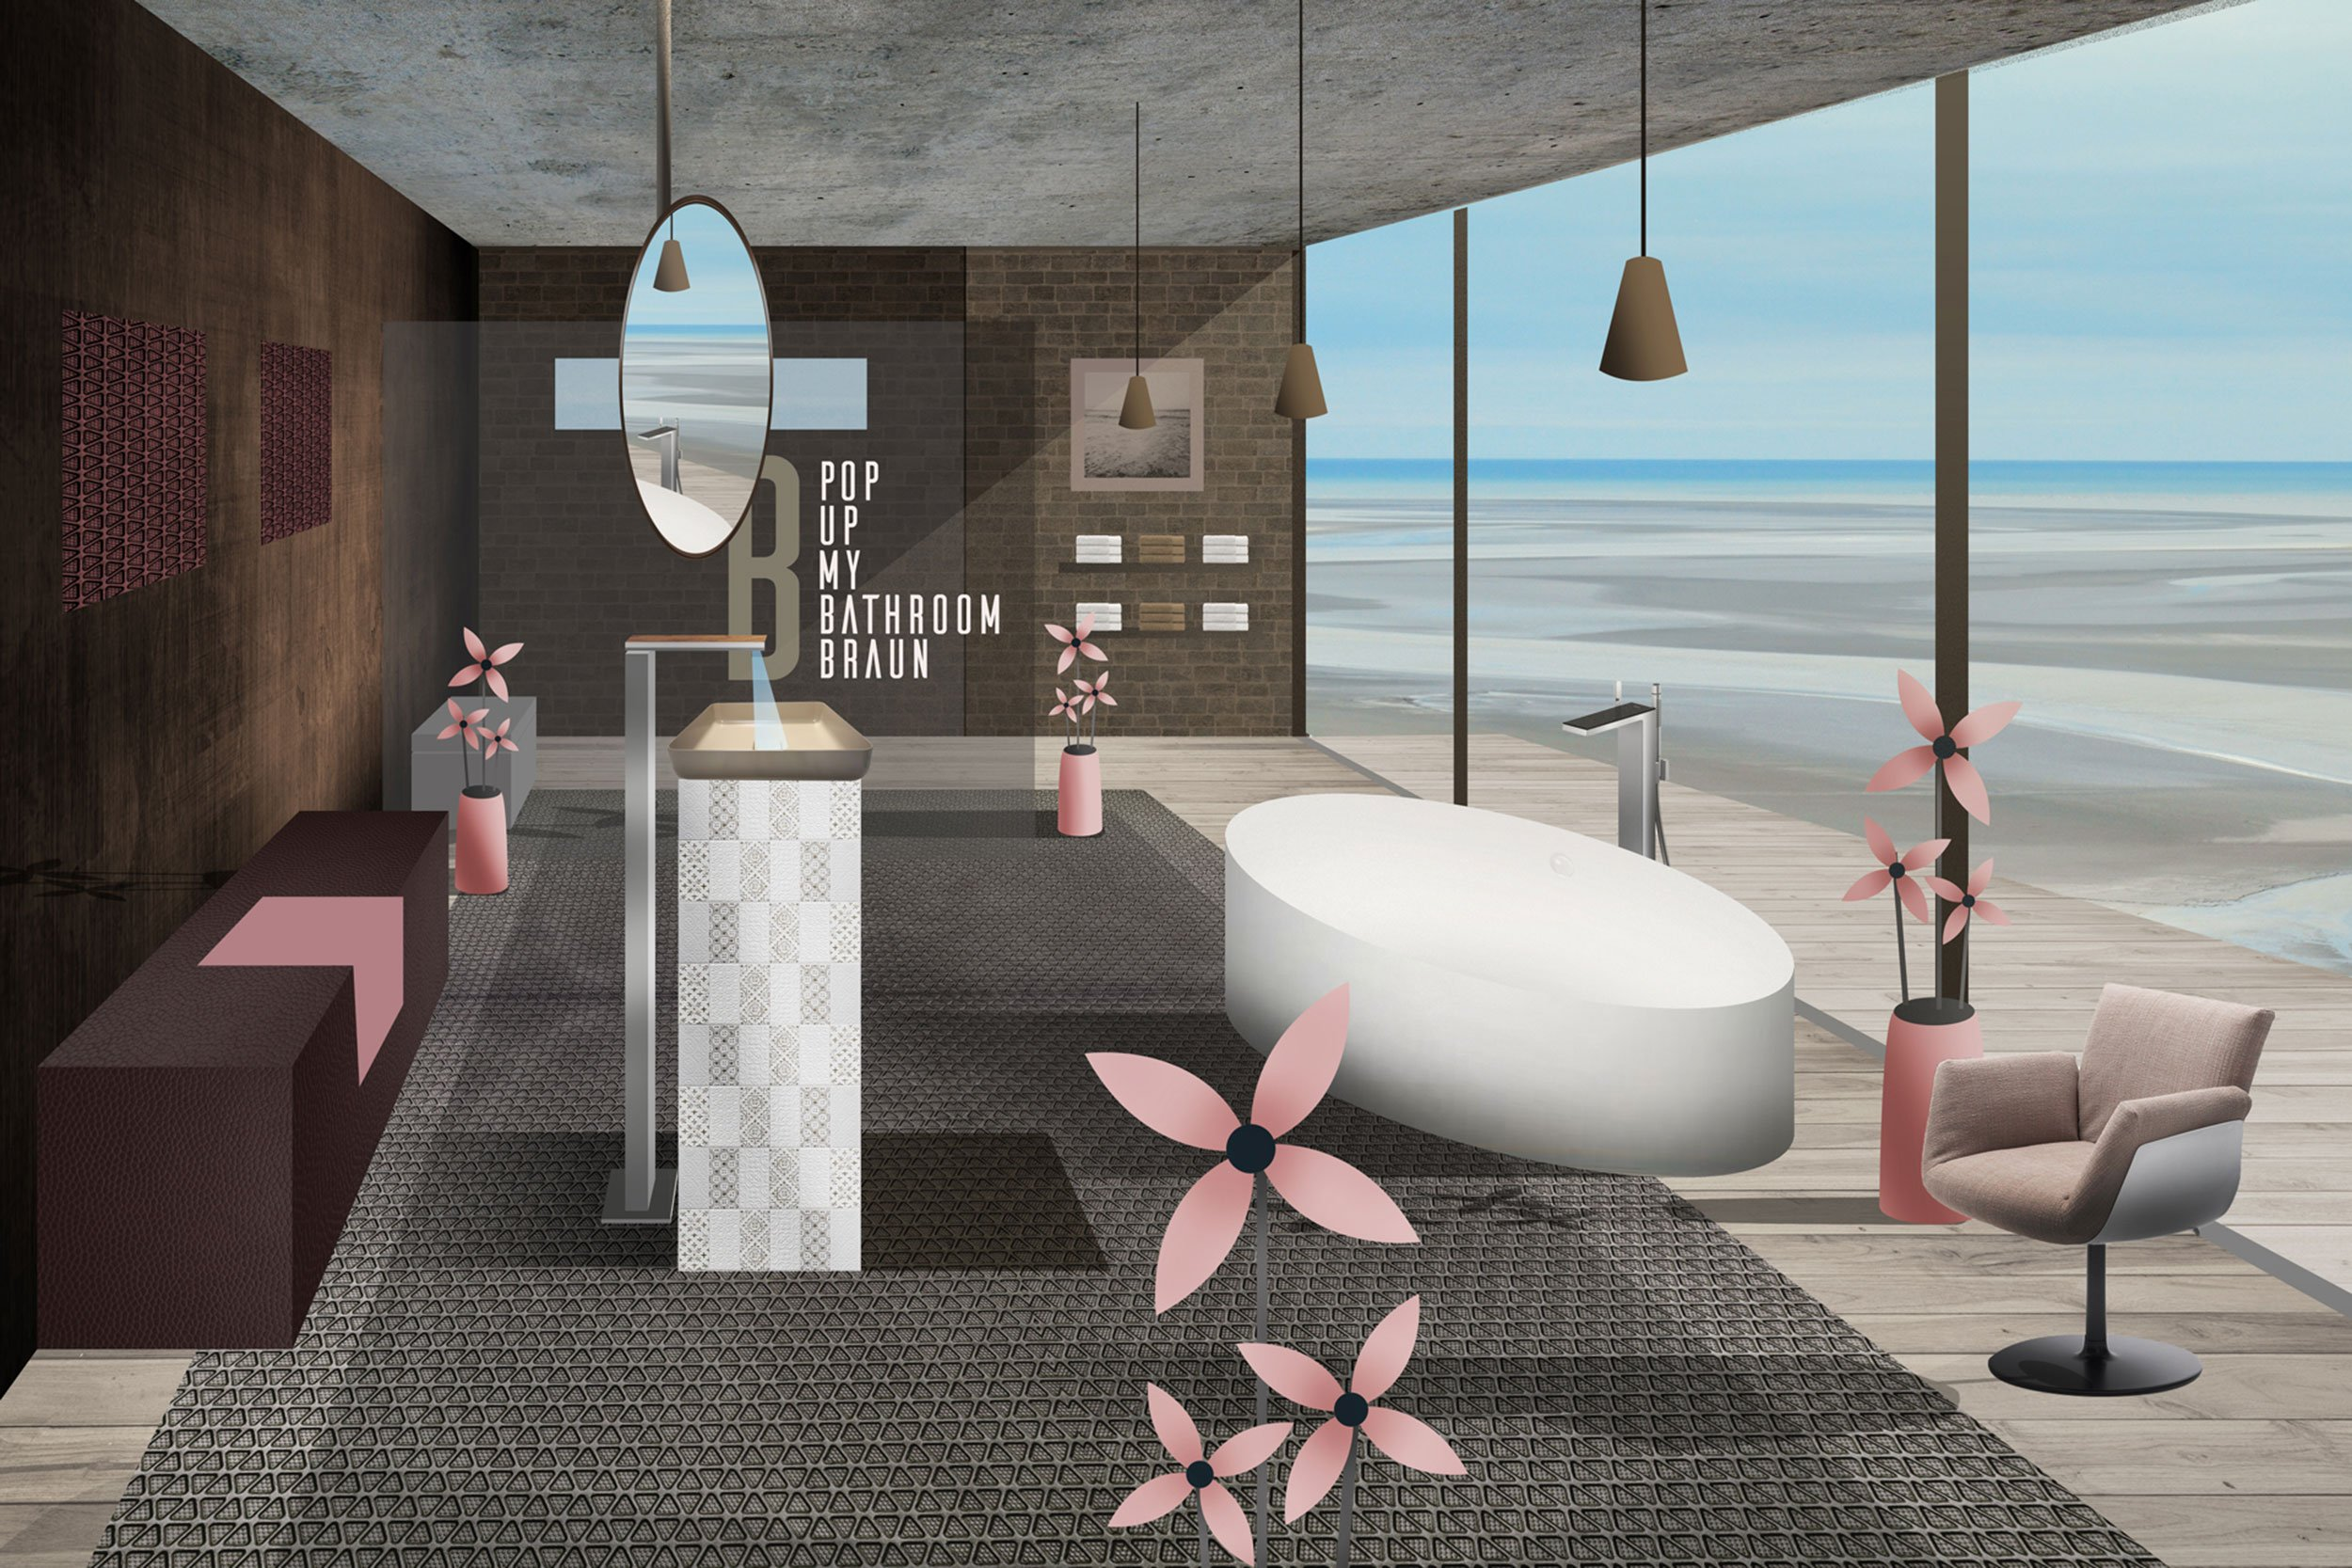 https://farconsulting.de/wp-content/uploads/2020/03/02_Pop-up-my-Bathroom-Illustrationen.jpg